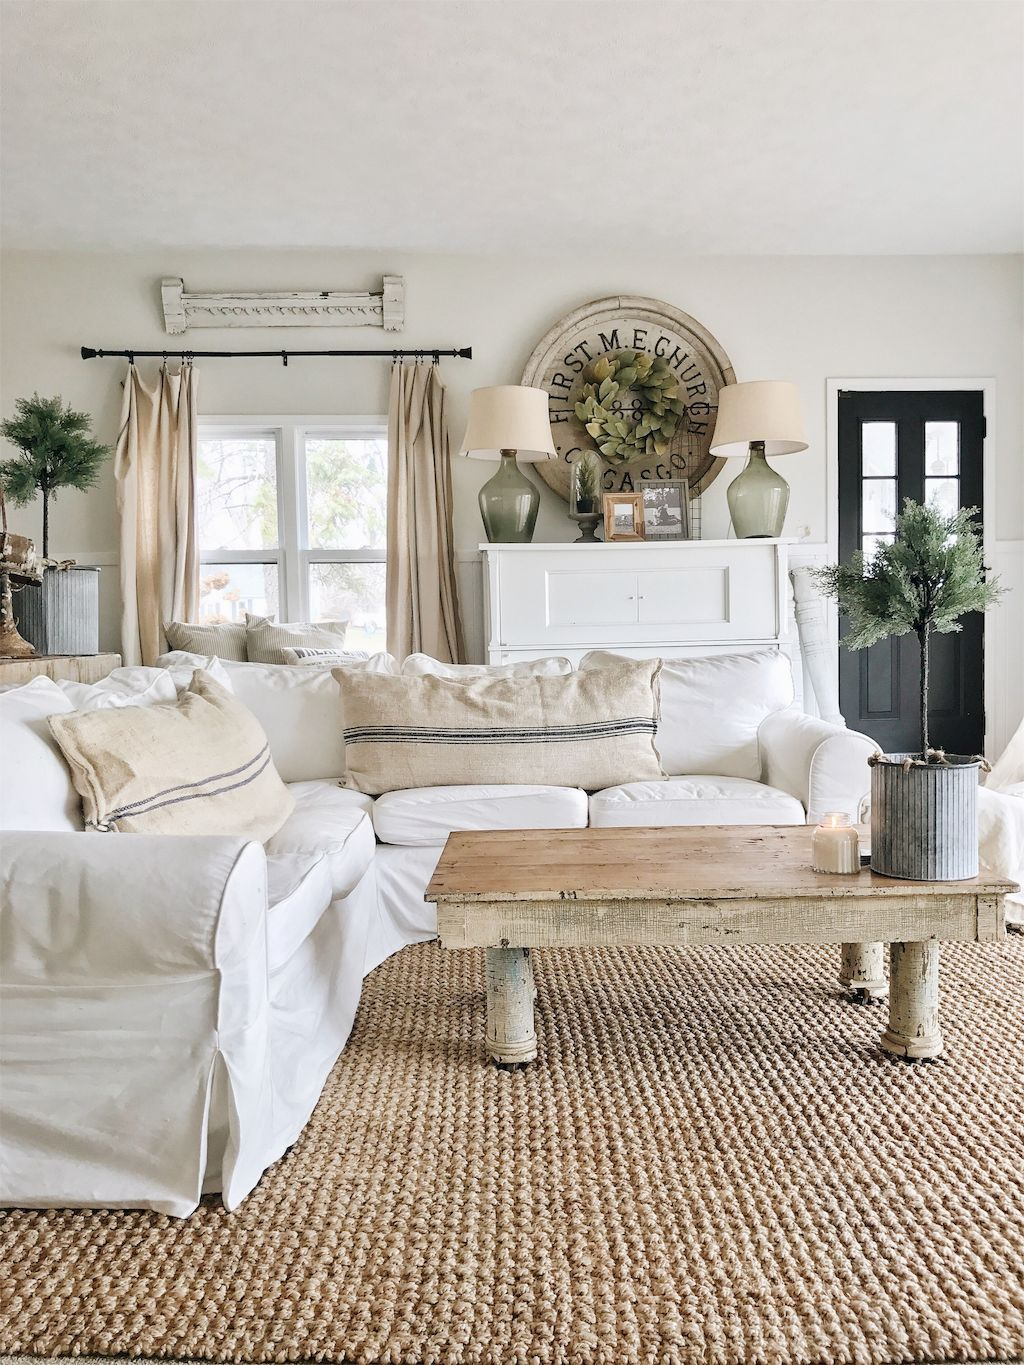 French country living room design ideas (44) | salon | Pinterest ...